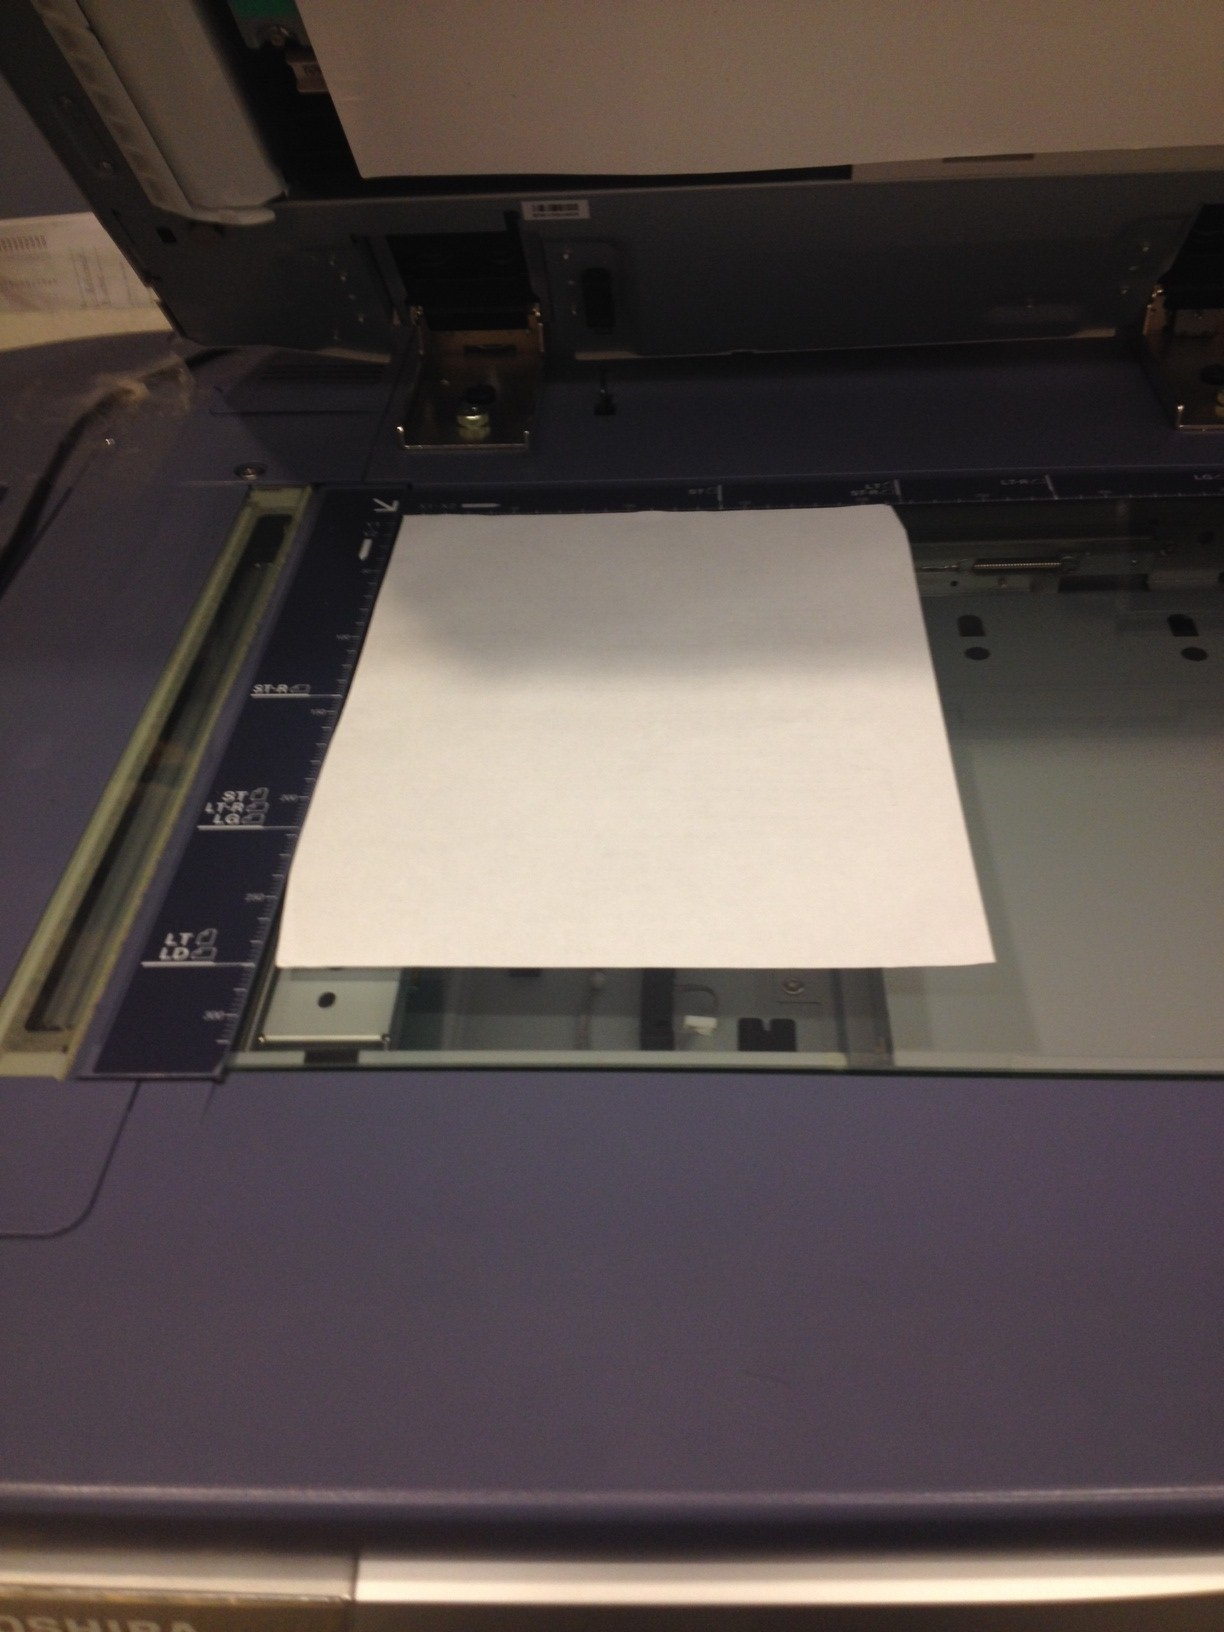 Document placement for scanning